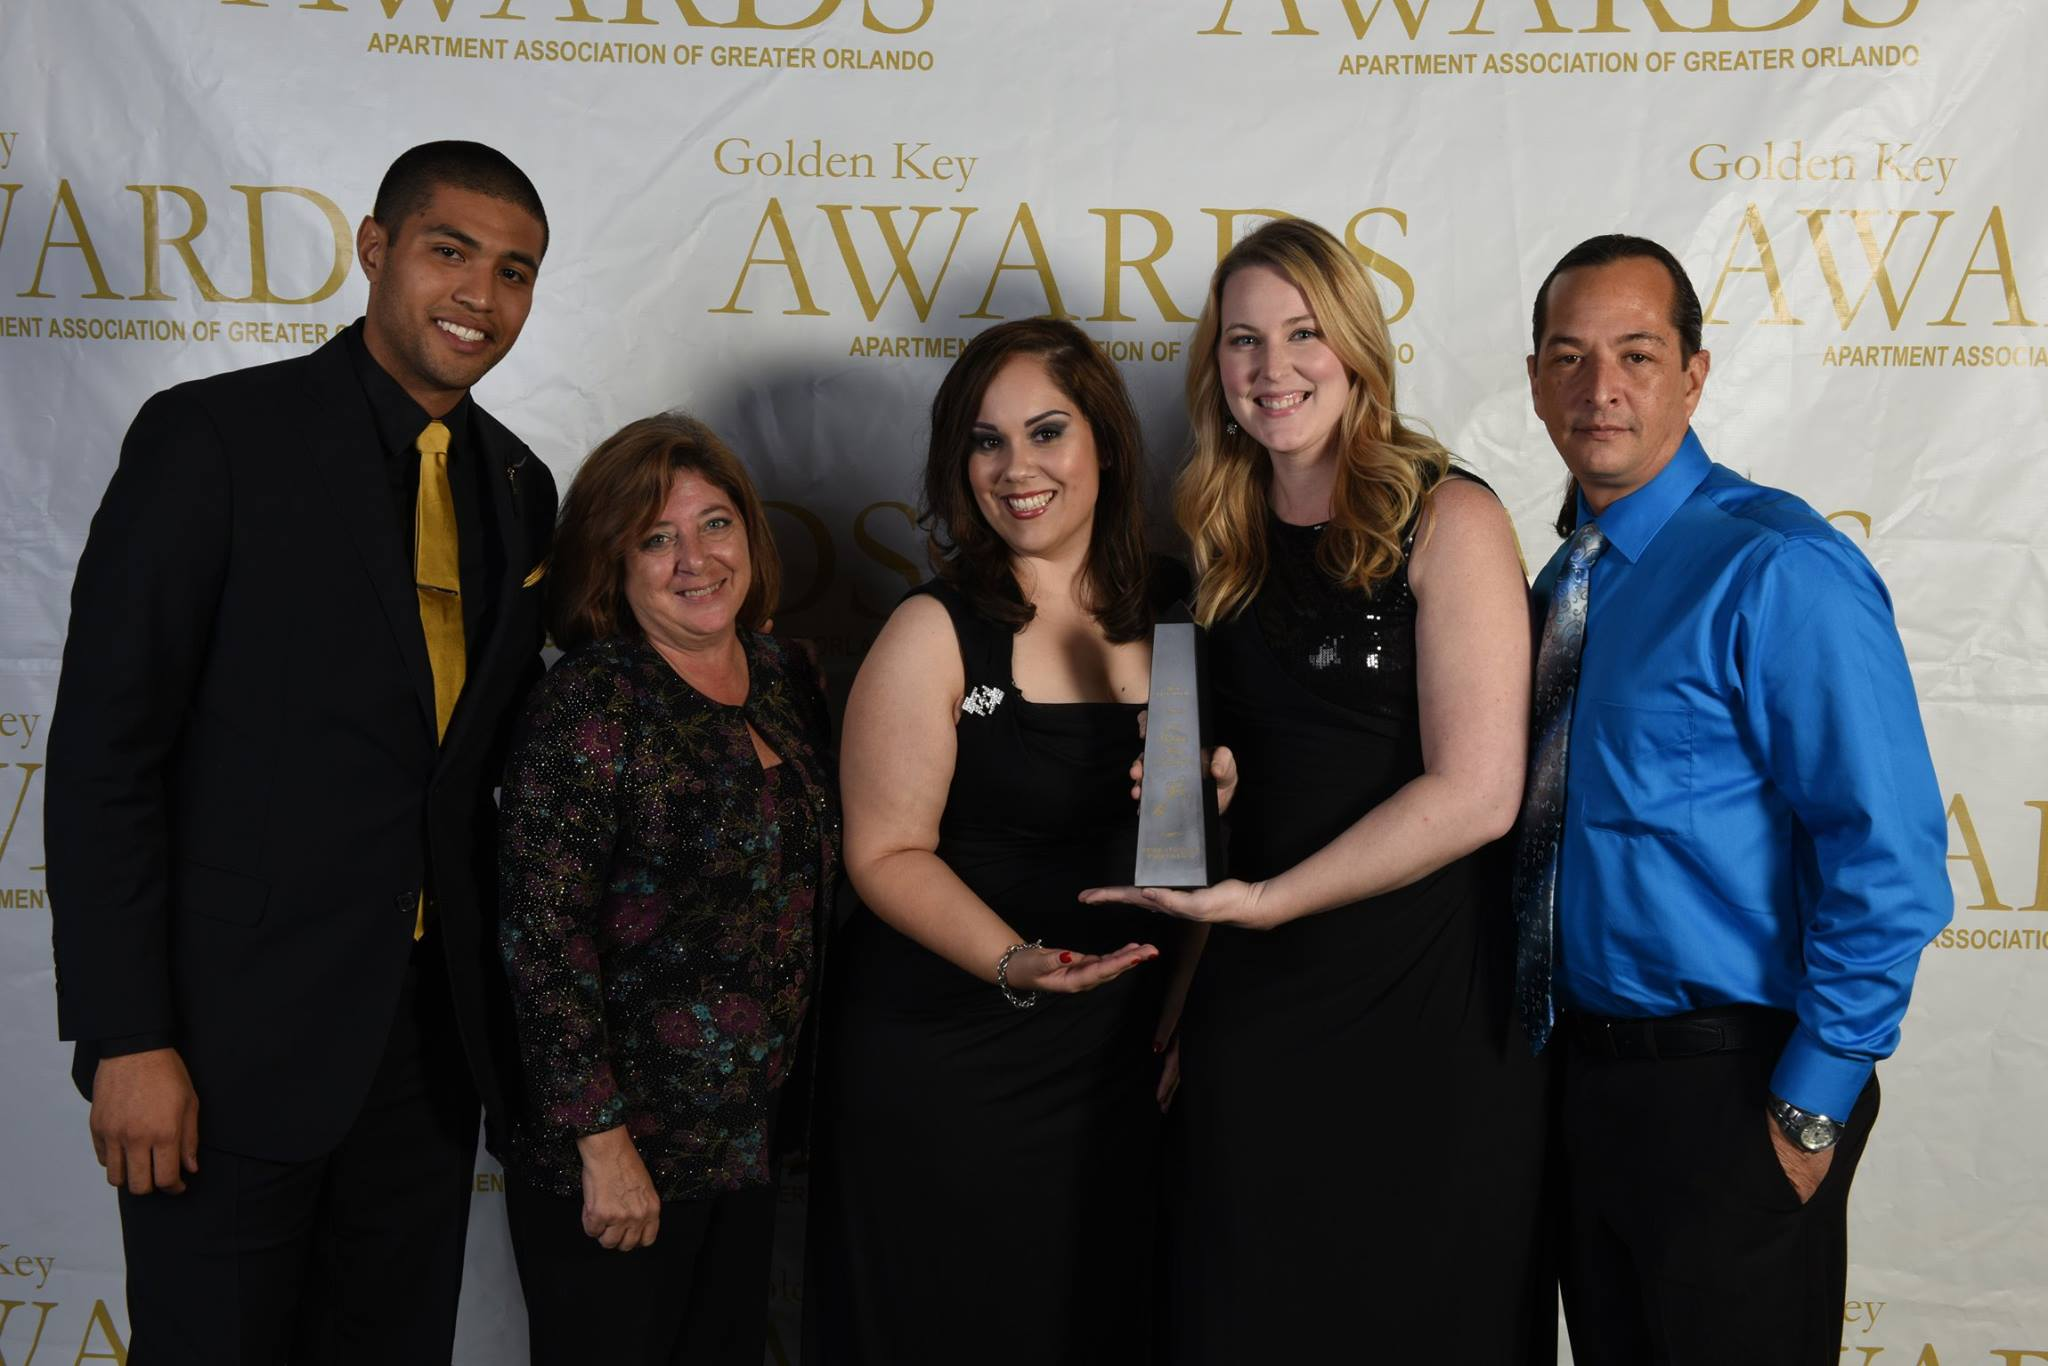 Golden Key Awards - ABC Company Wins Supplier of the Year